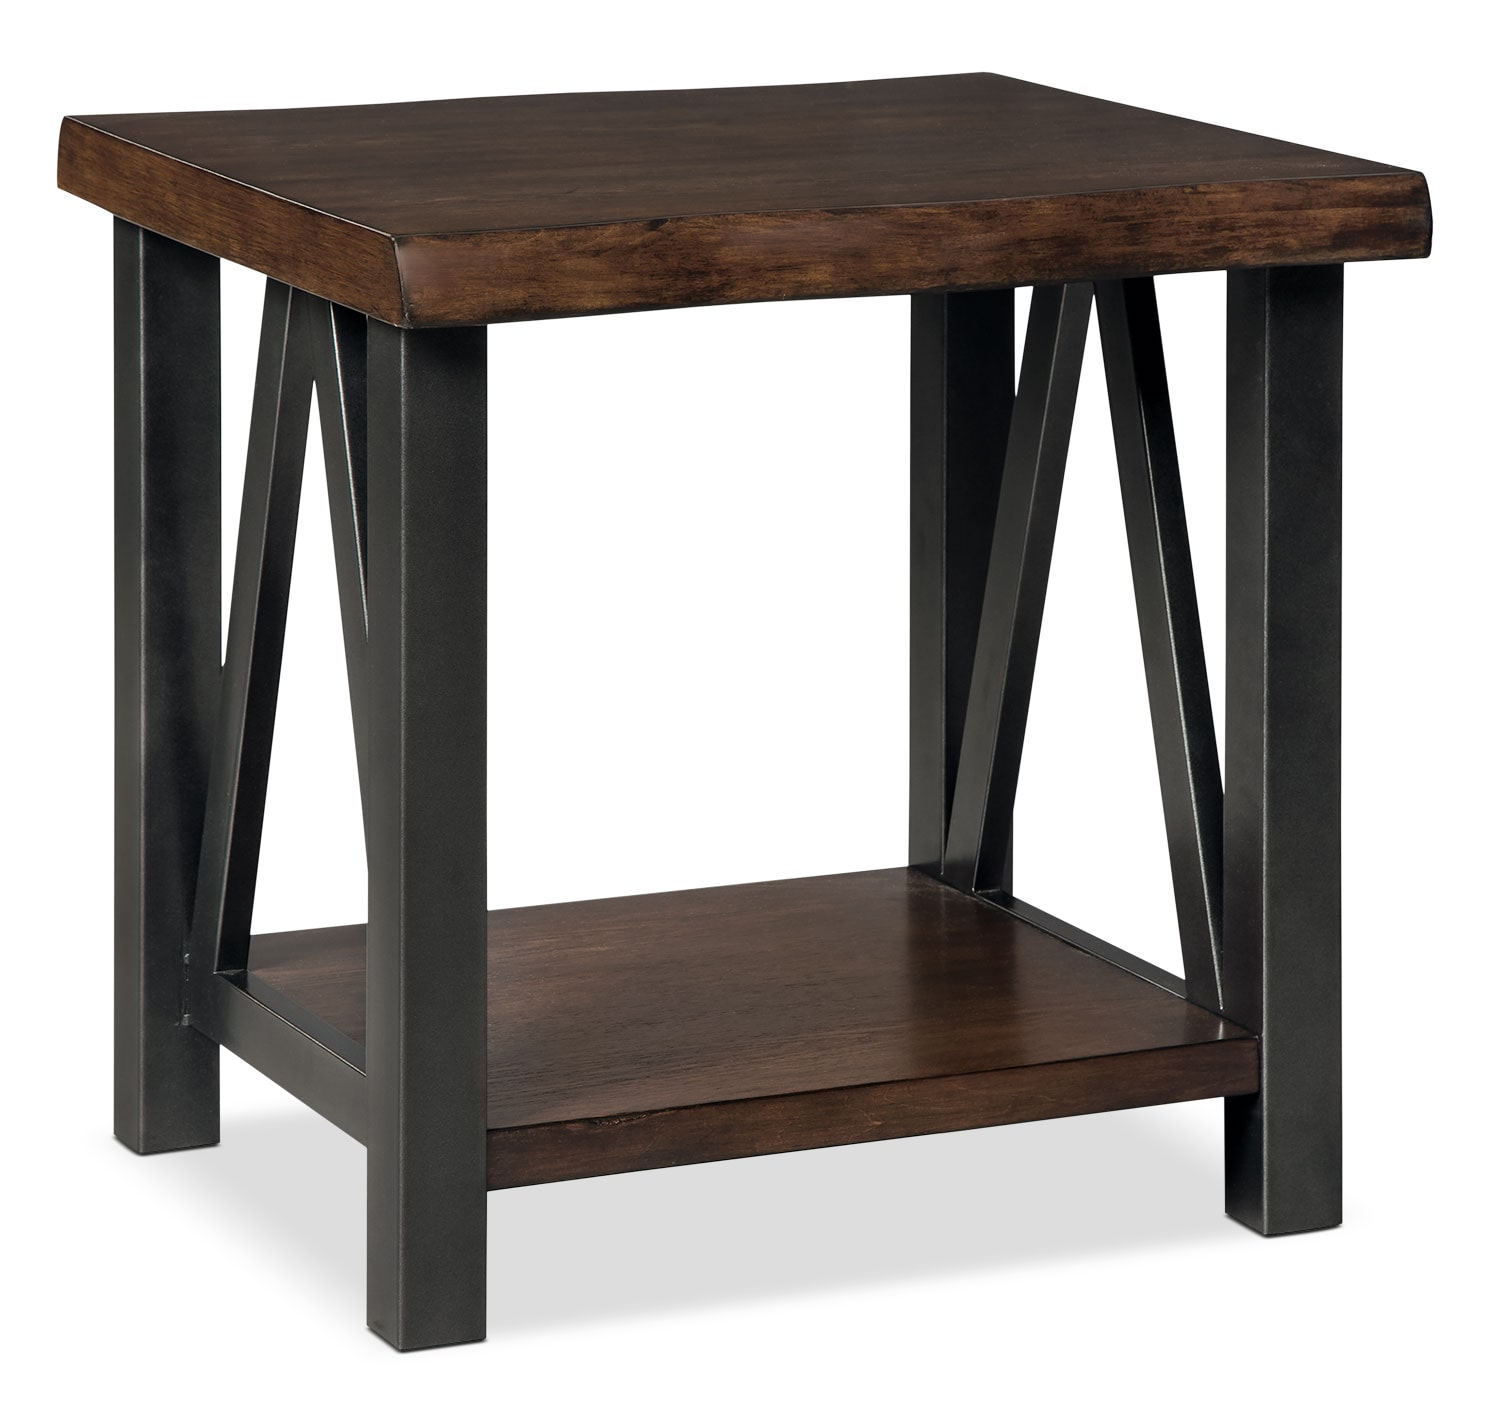 esmarina end table the brick. Black Bedroom Furniture Sets. Home Design Ideas